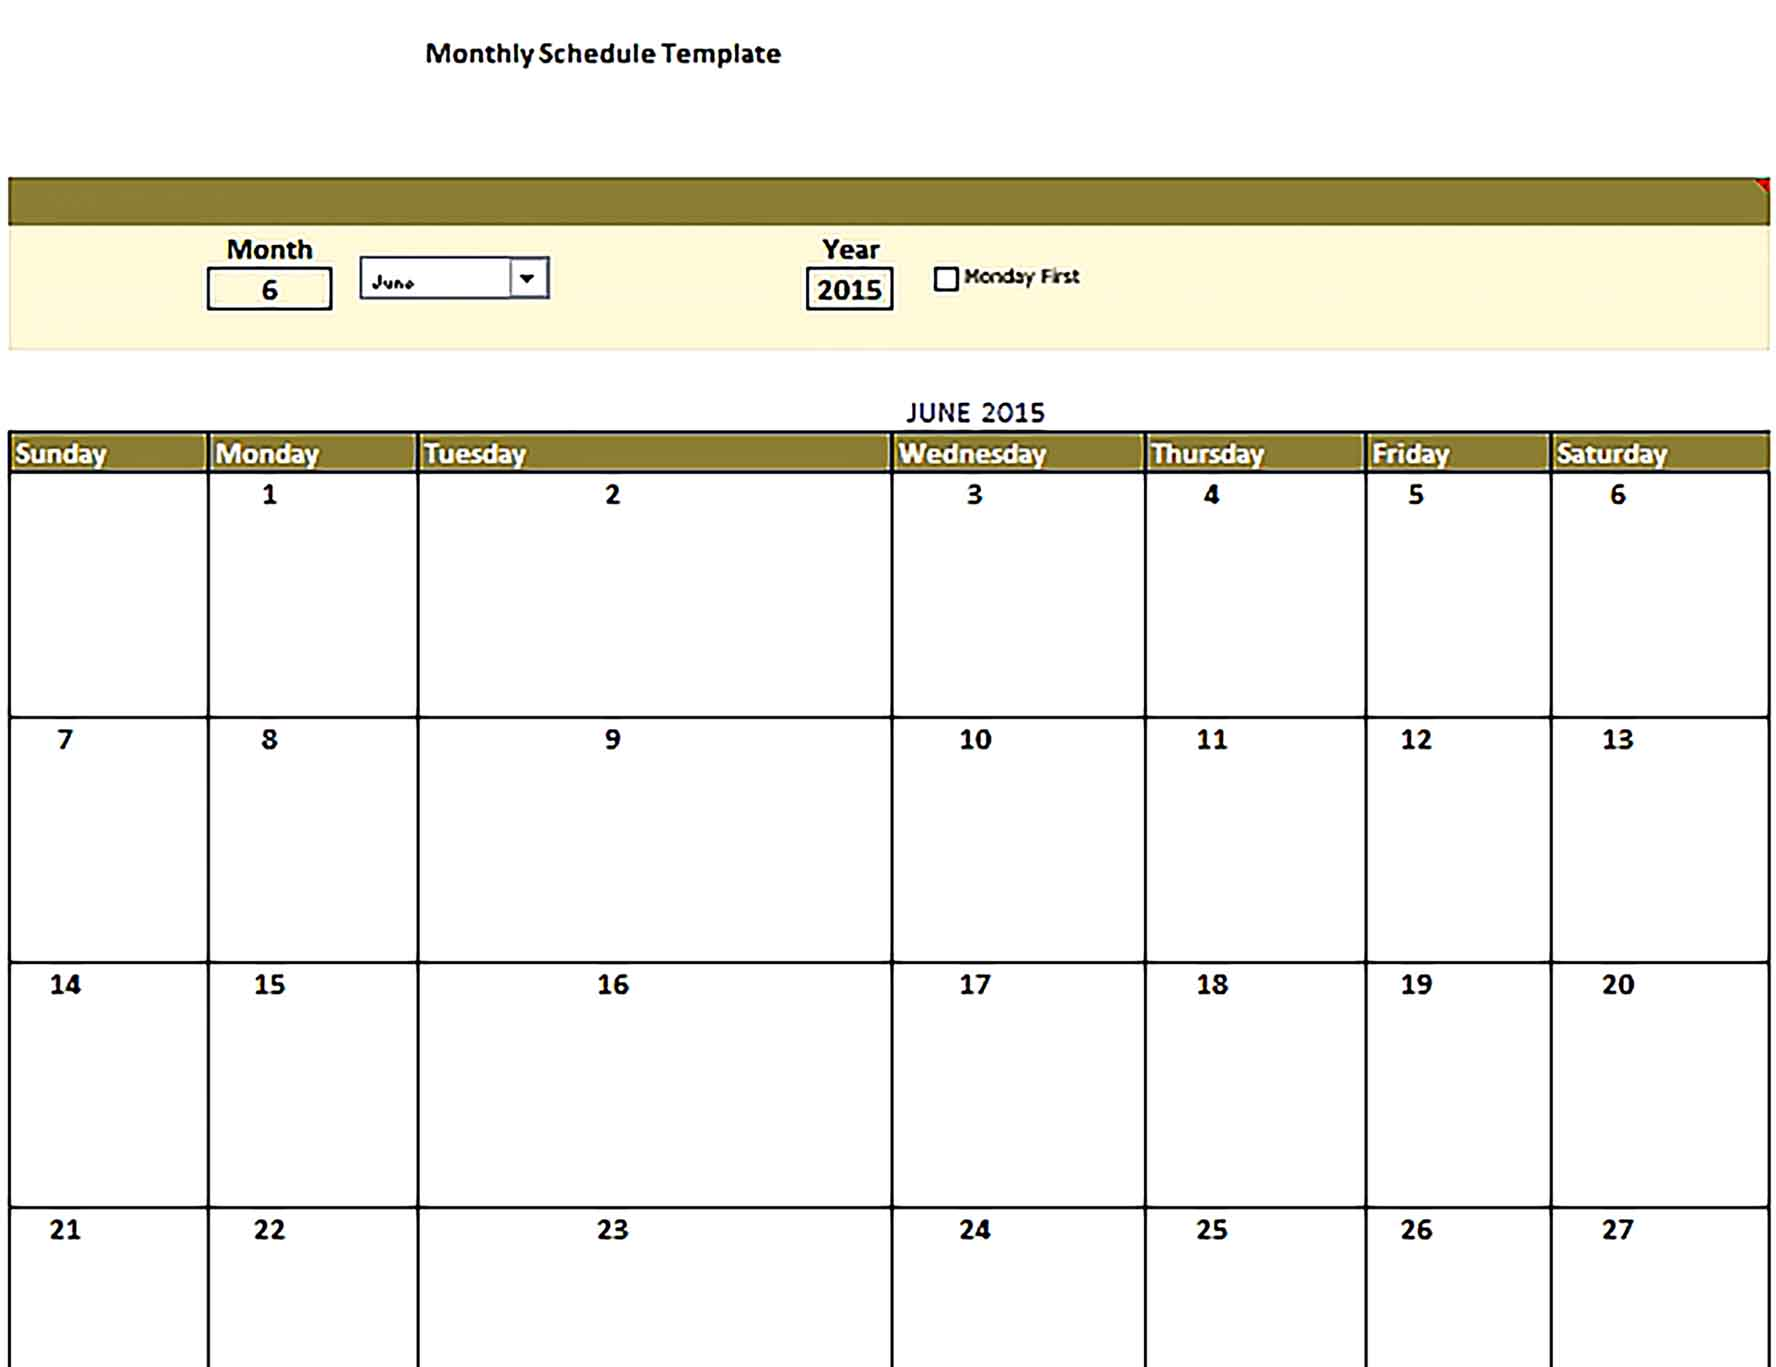 Template monthly schedule Sample